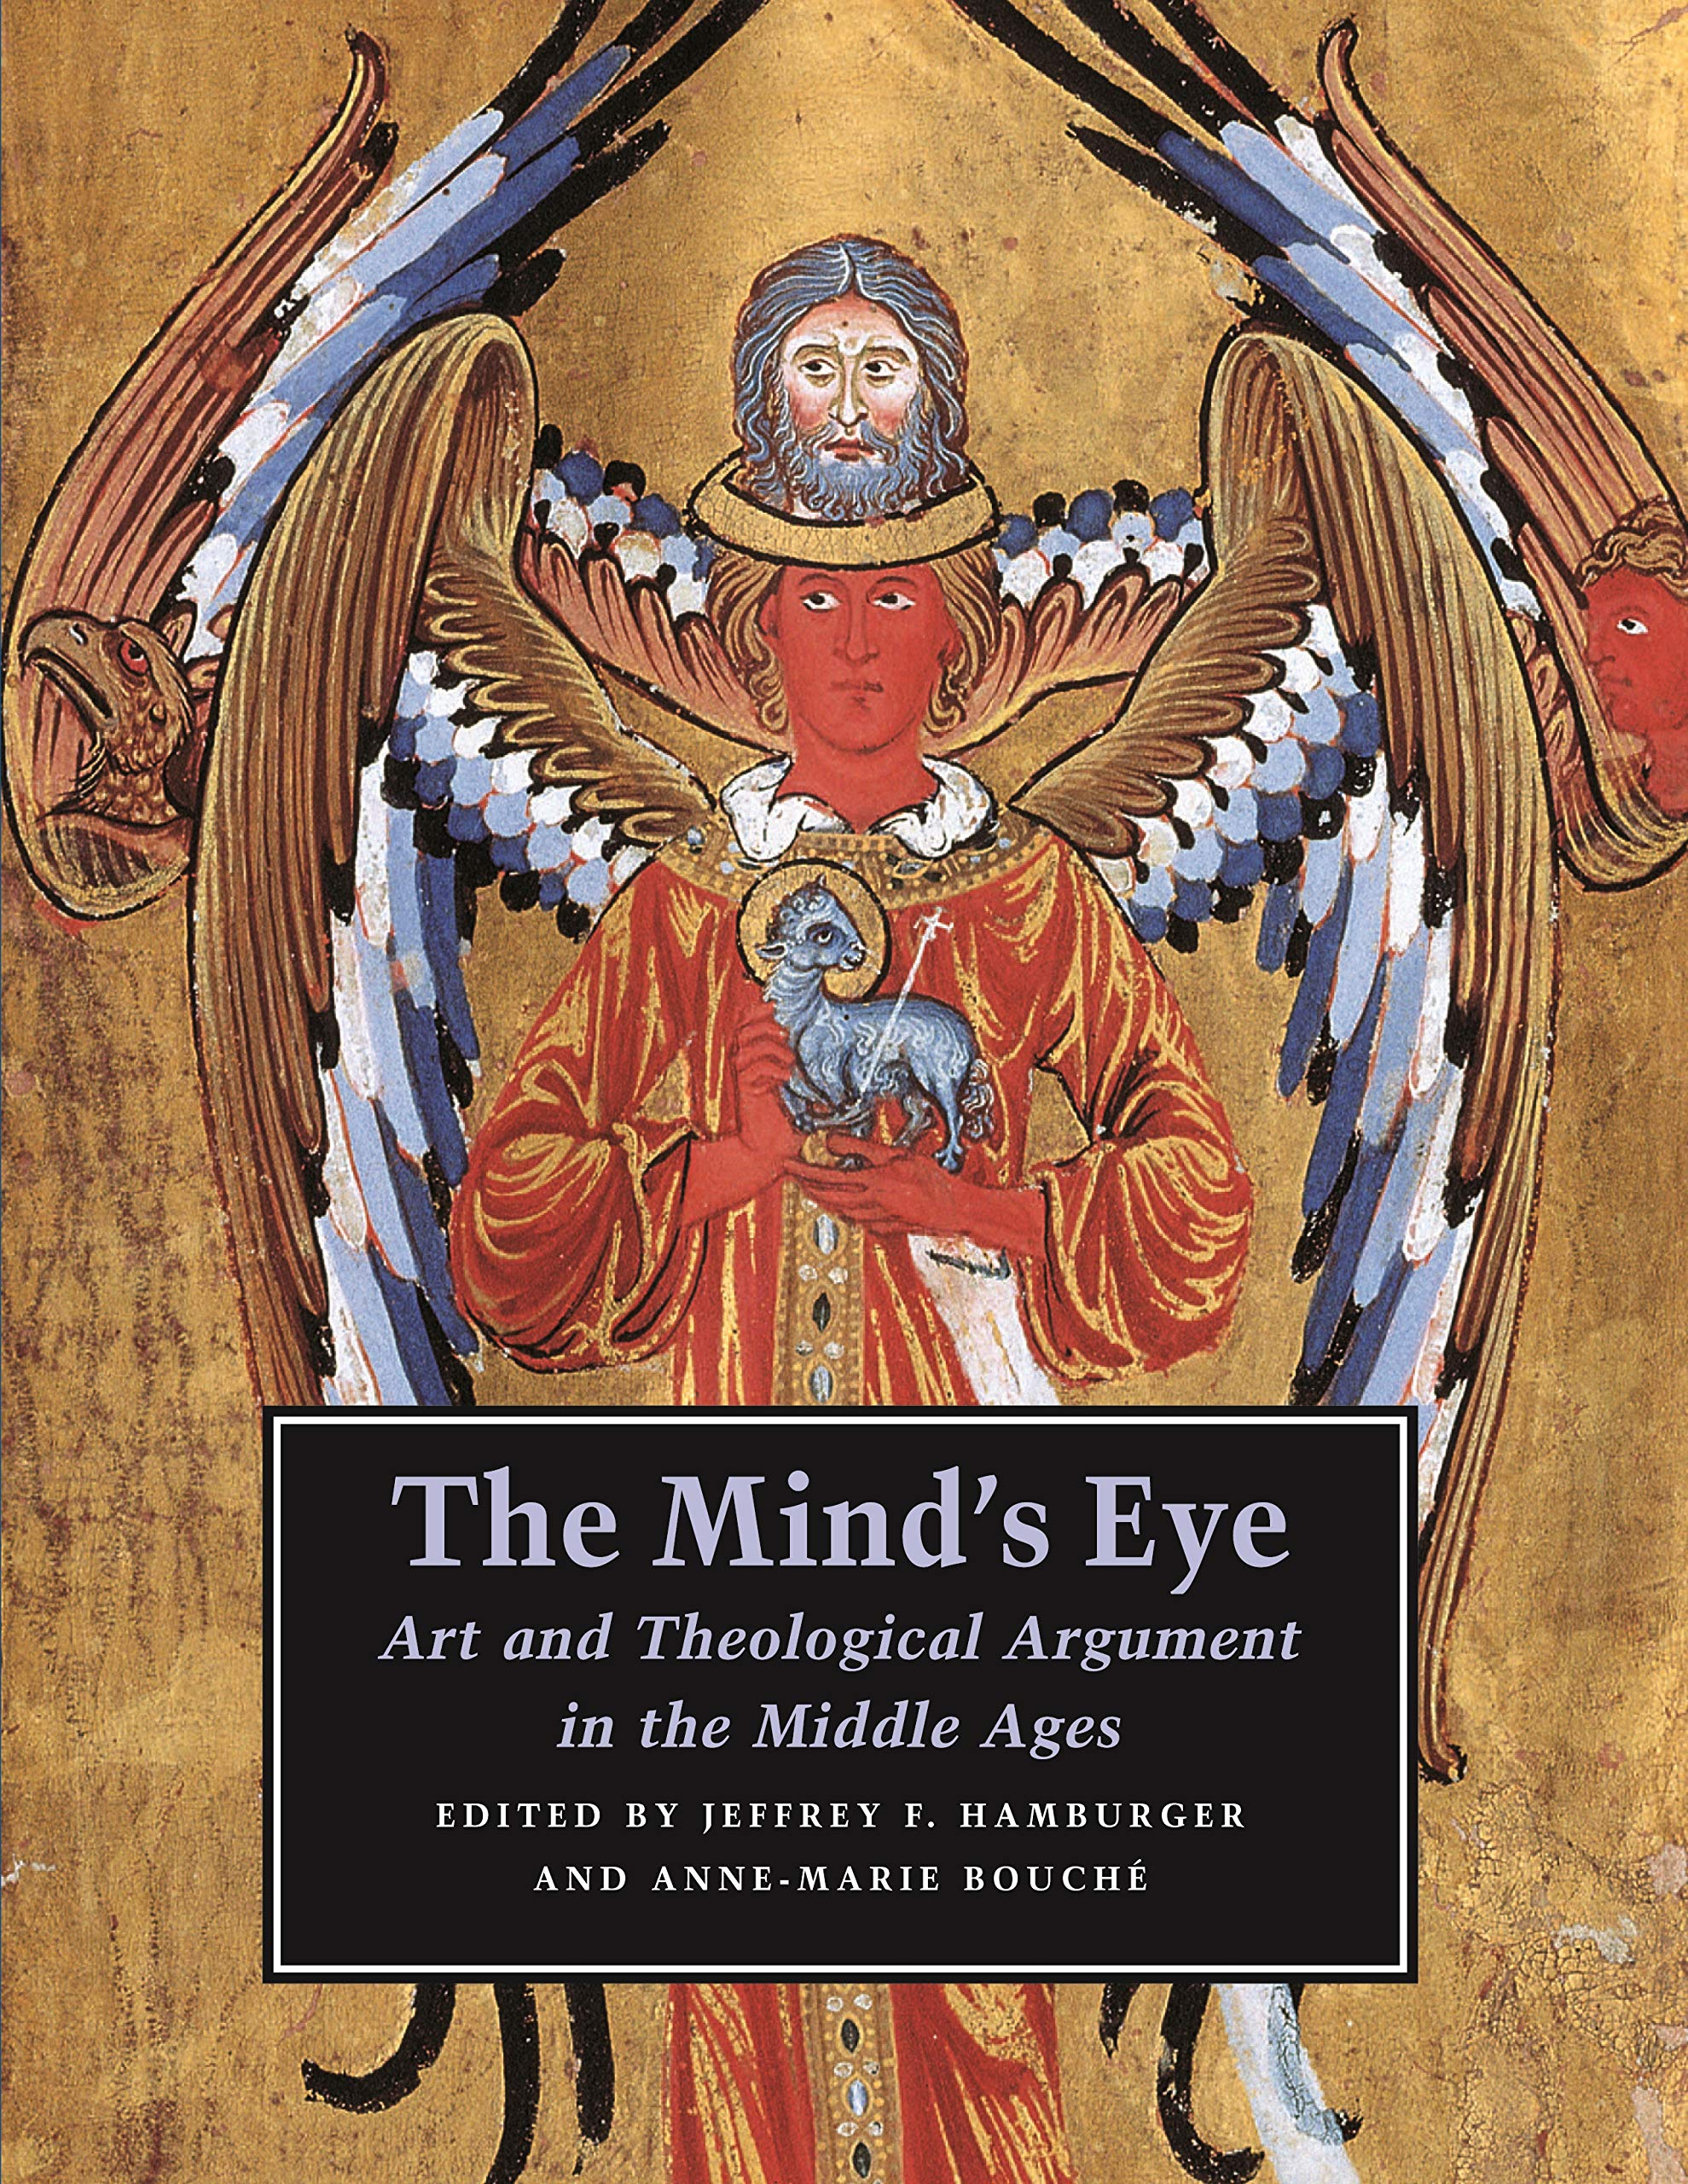 The Mind's Eye: Art and Theological Argument in the Middle Ages (Publications of the Department of Art and Archaeology, Princeton University) por Jeffrey F. Hamburger